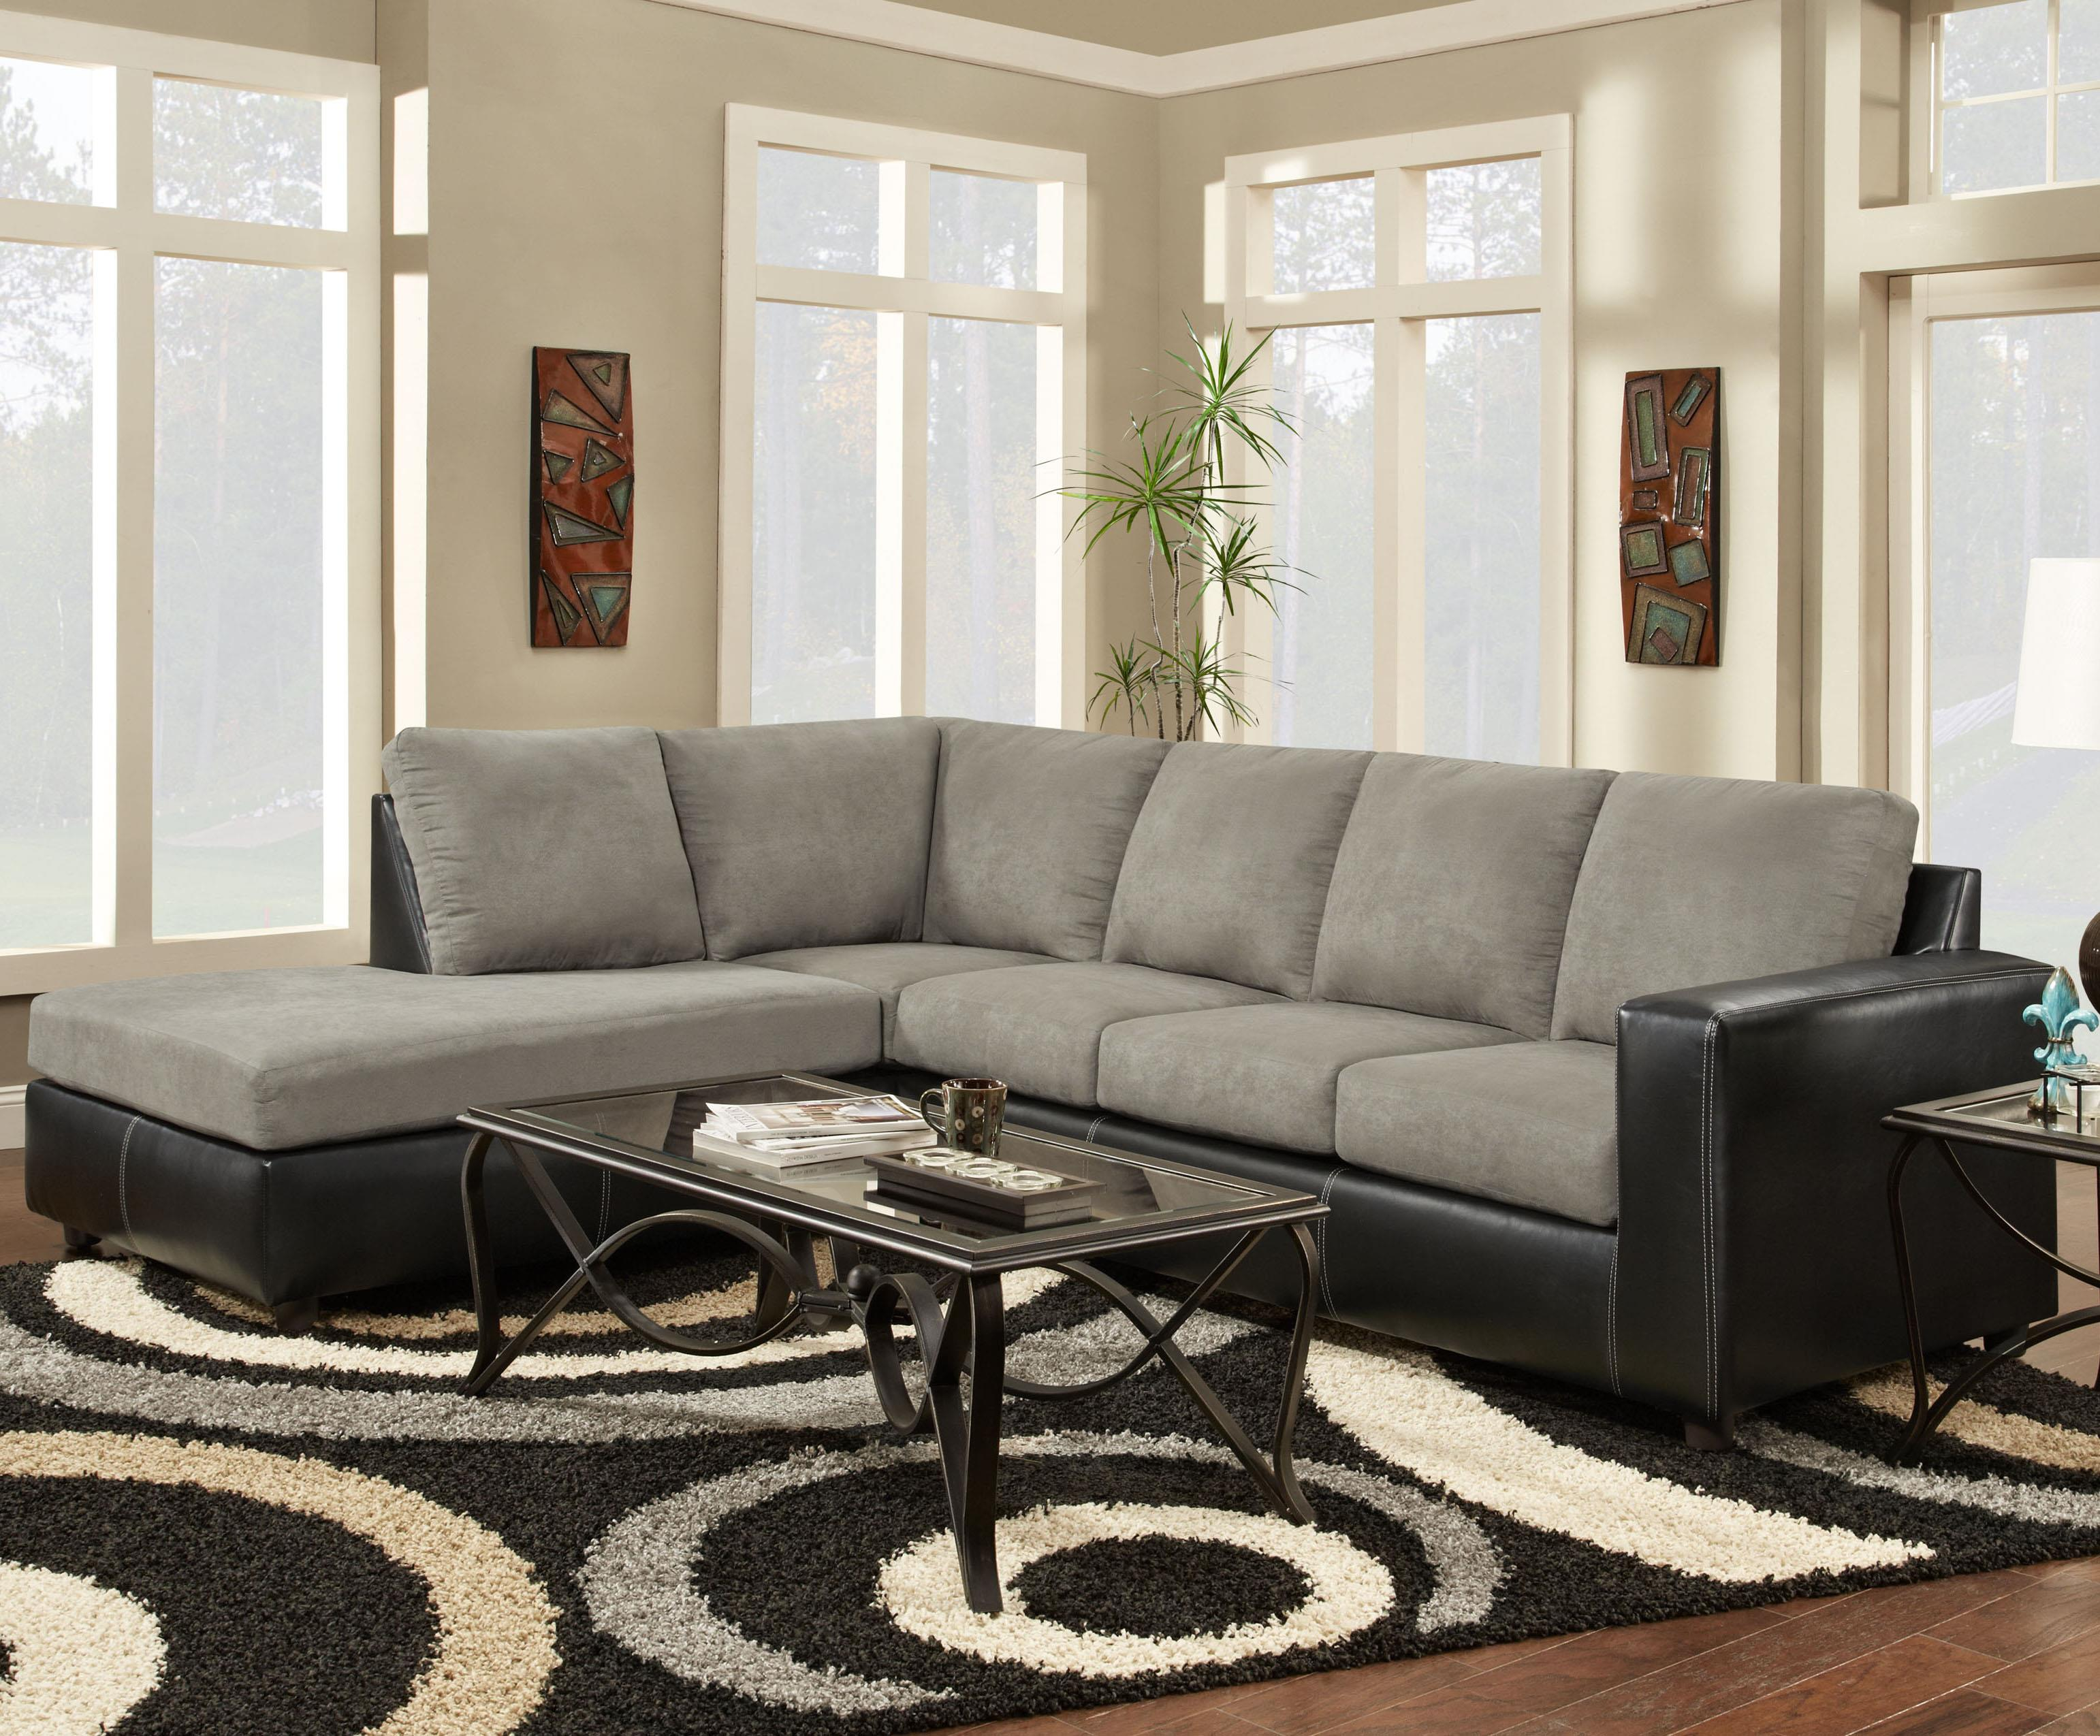 Affordable furniture 3650 sofa sectional royal furniture for Affordable furniture number